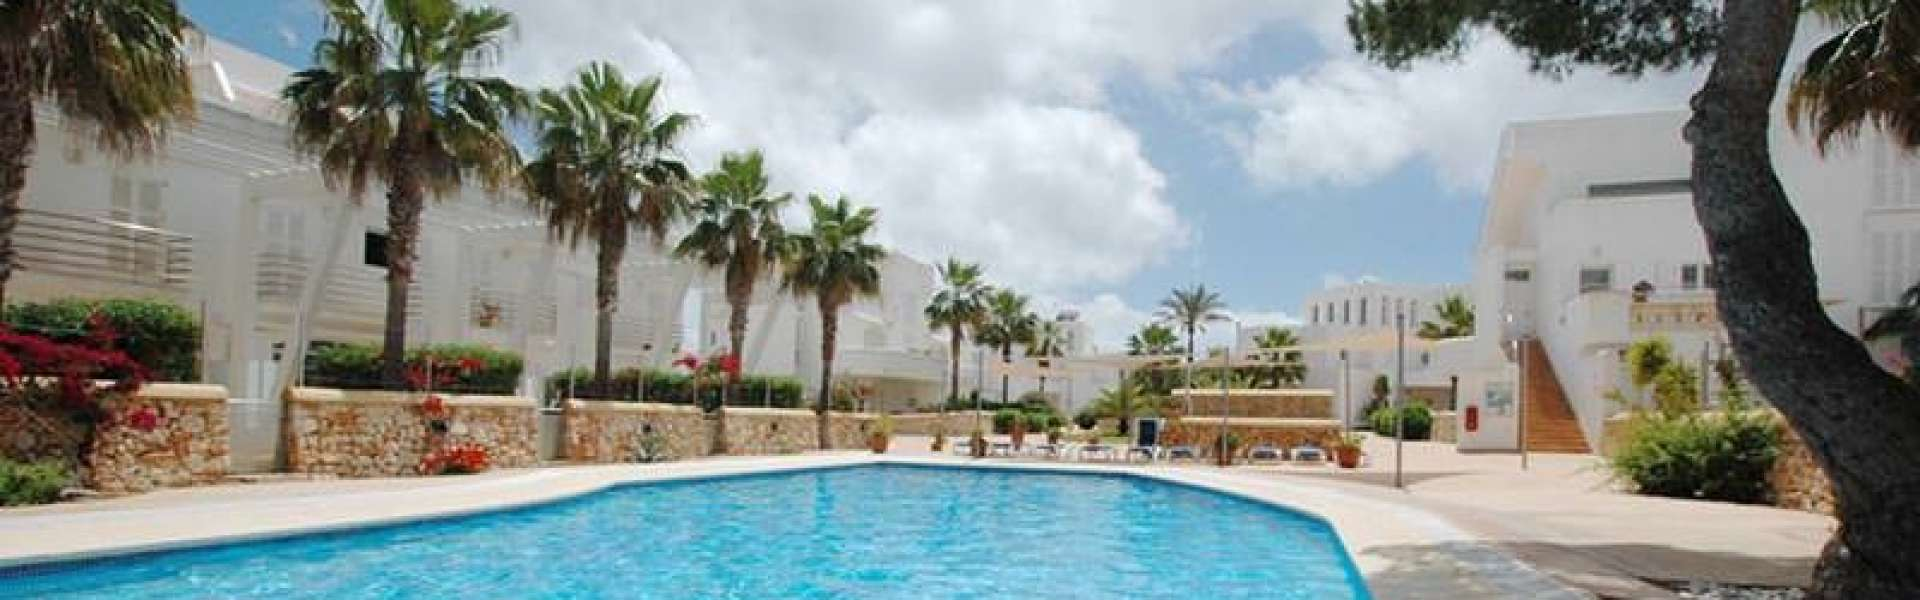 Cala d'Or - Ground floor apartment in a beautiful complex